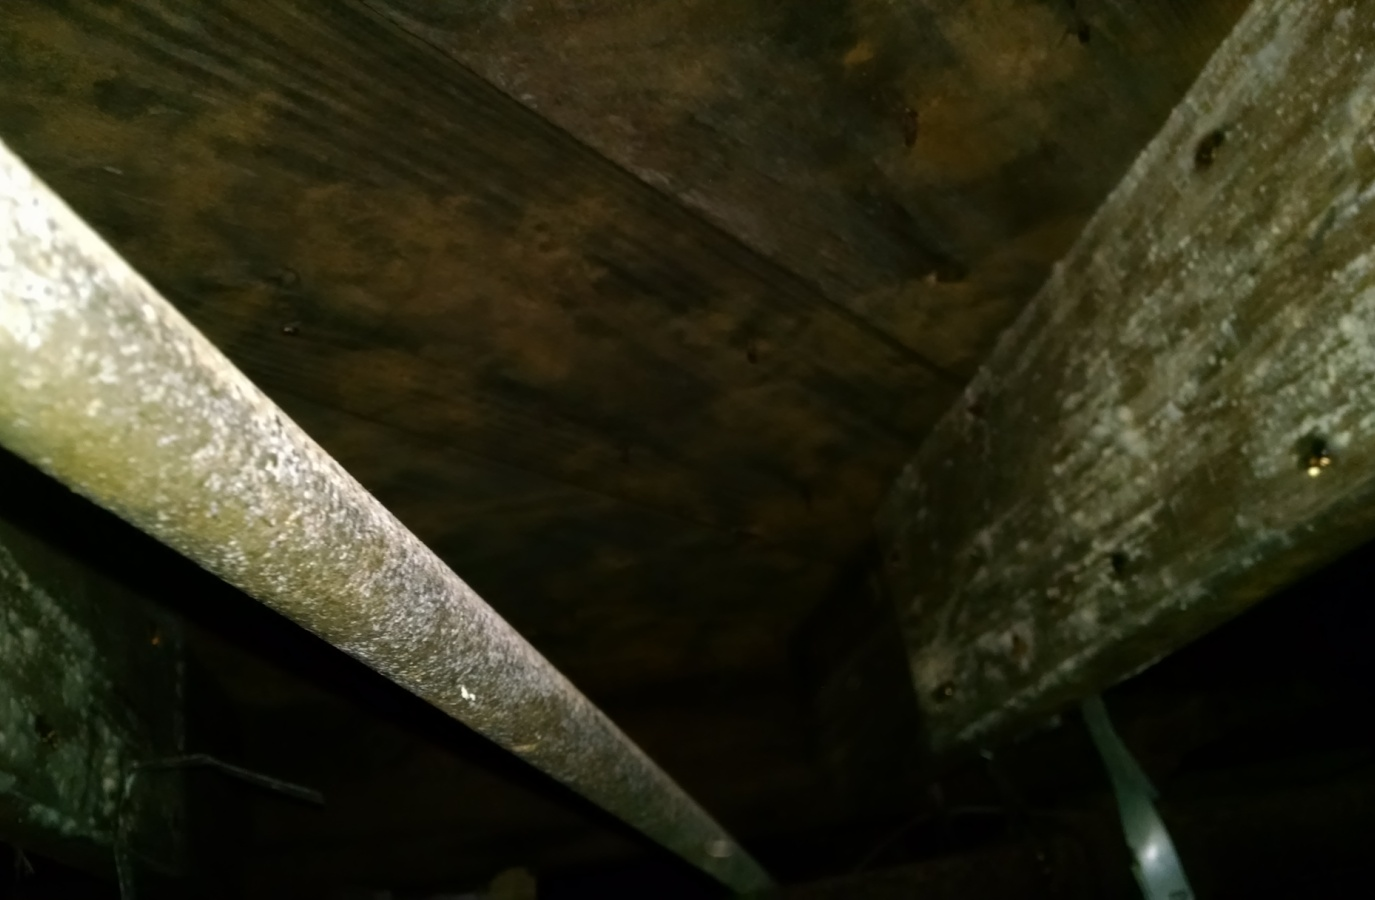 White mold crawlspace